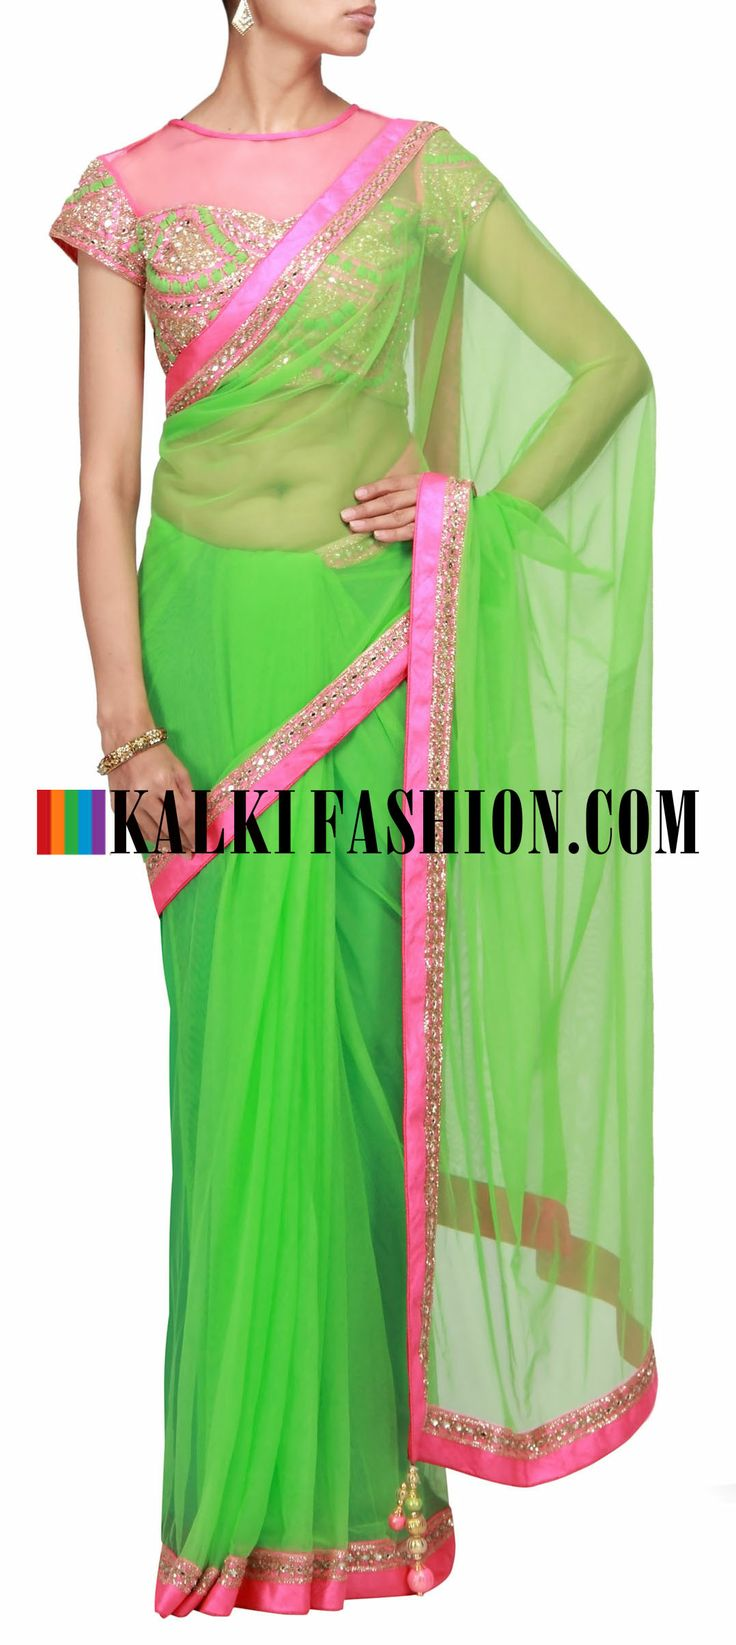 Green saree with embroidered blouse